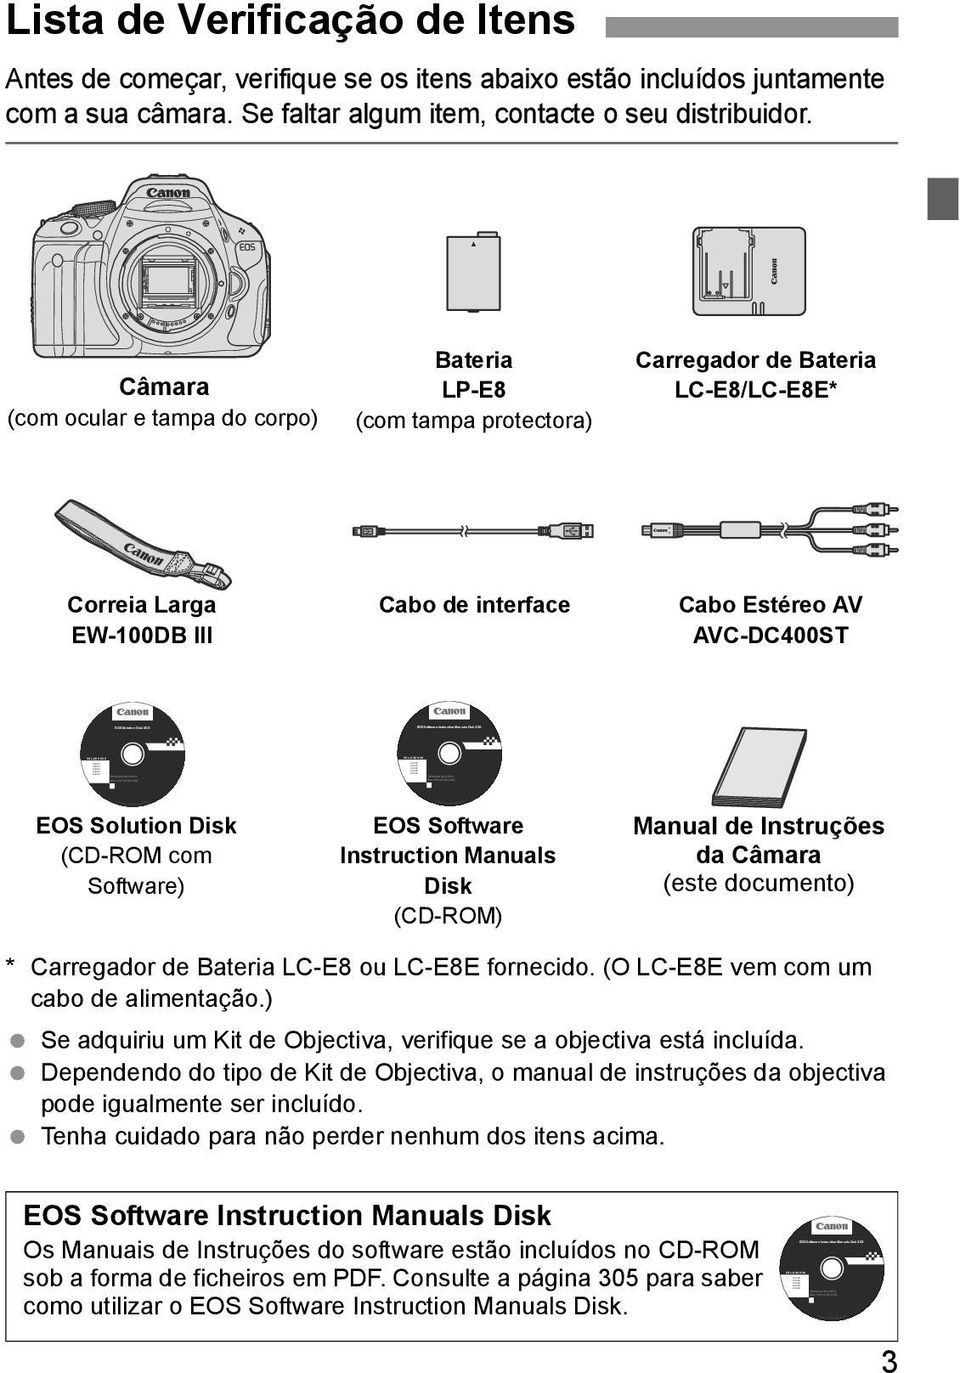 CEL-XXX XXX XXXXX XXXXX XXXXX XXXXX XXXXX EOS Software Instruction Manuals Dis XXX Windows XXX XXX Mac OS X XXX XXX CANON INC. 20XX. Made in the EU.